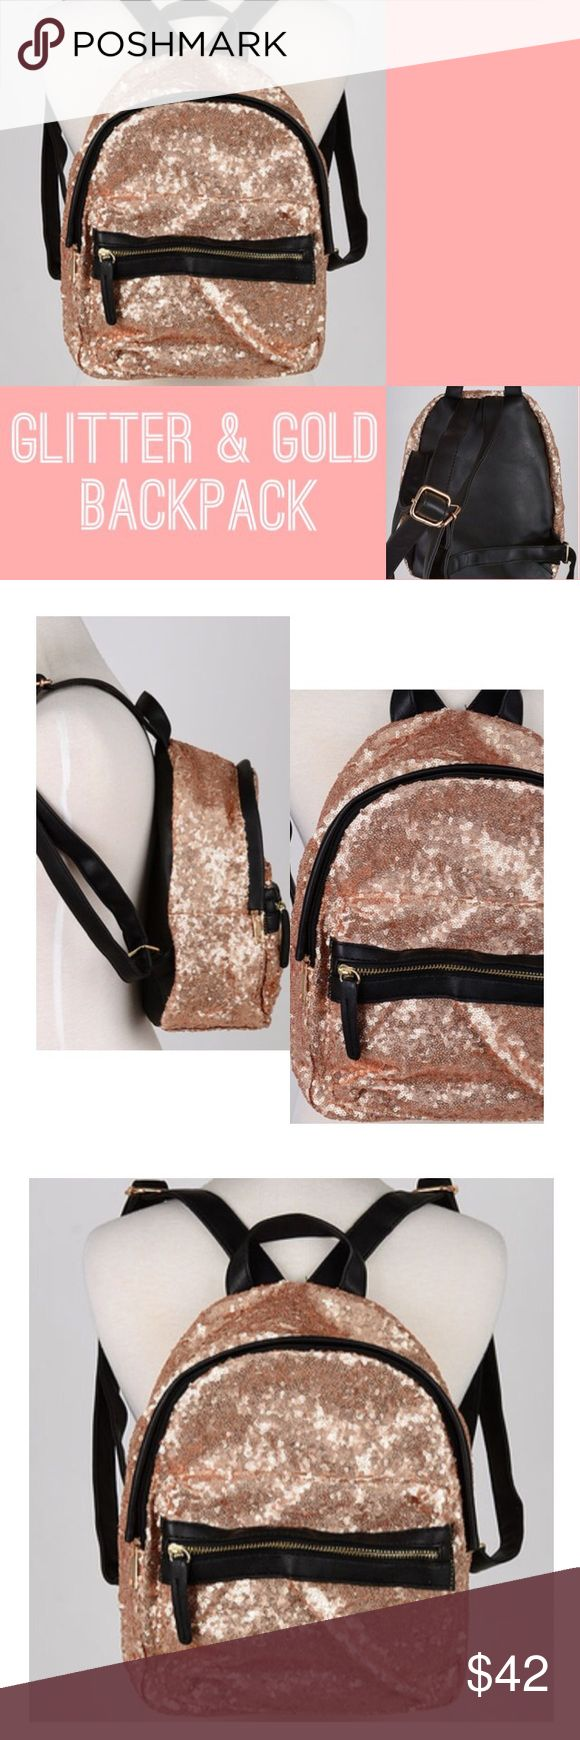 """Glitter and Gold"" Backpack Get your shine on with this gorgeous gold bag that stands out in a crowd and makes a pretty statement!! ✨ Faux leather detail with gold hardware. Measures 12"" x 6"" x 11"", color options include: gold and mixed (gold and silver) Paper Hearts Bags Backpacks"